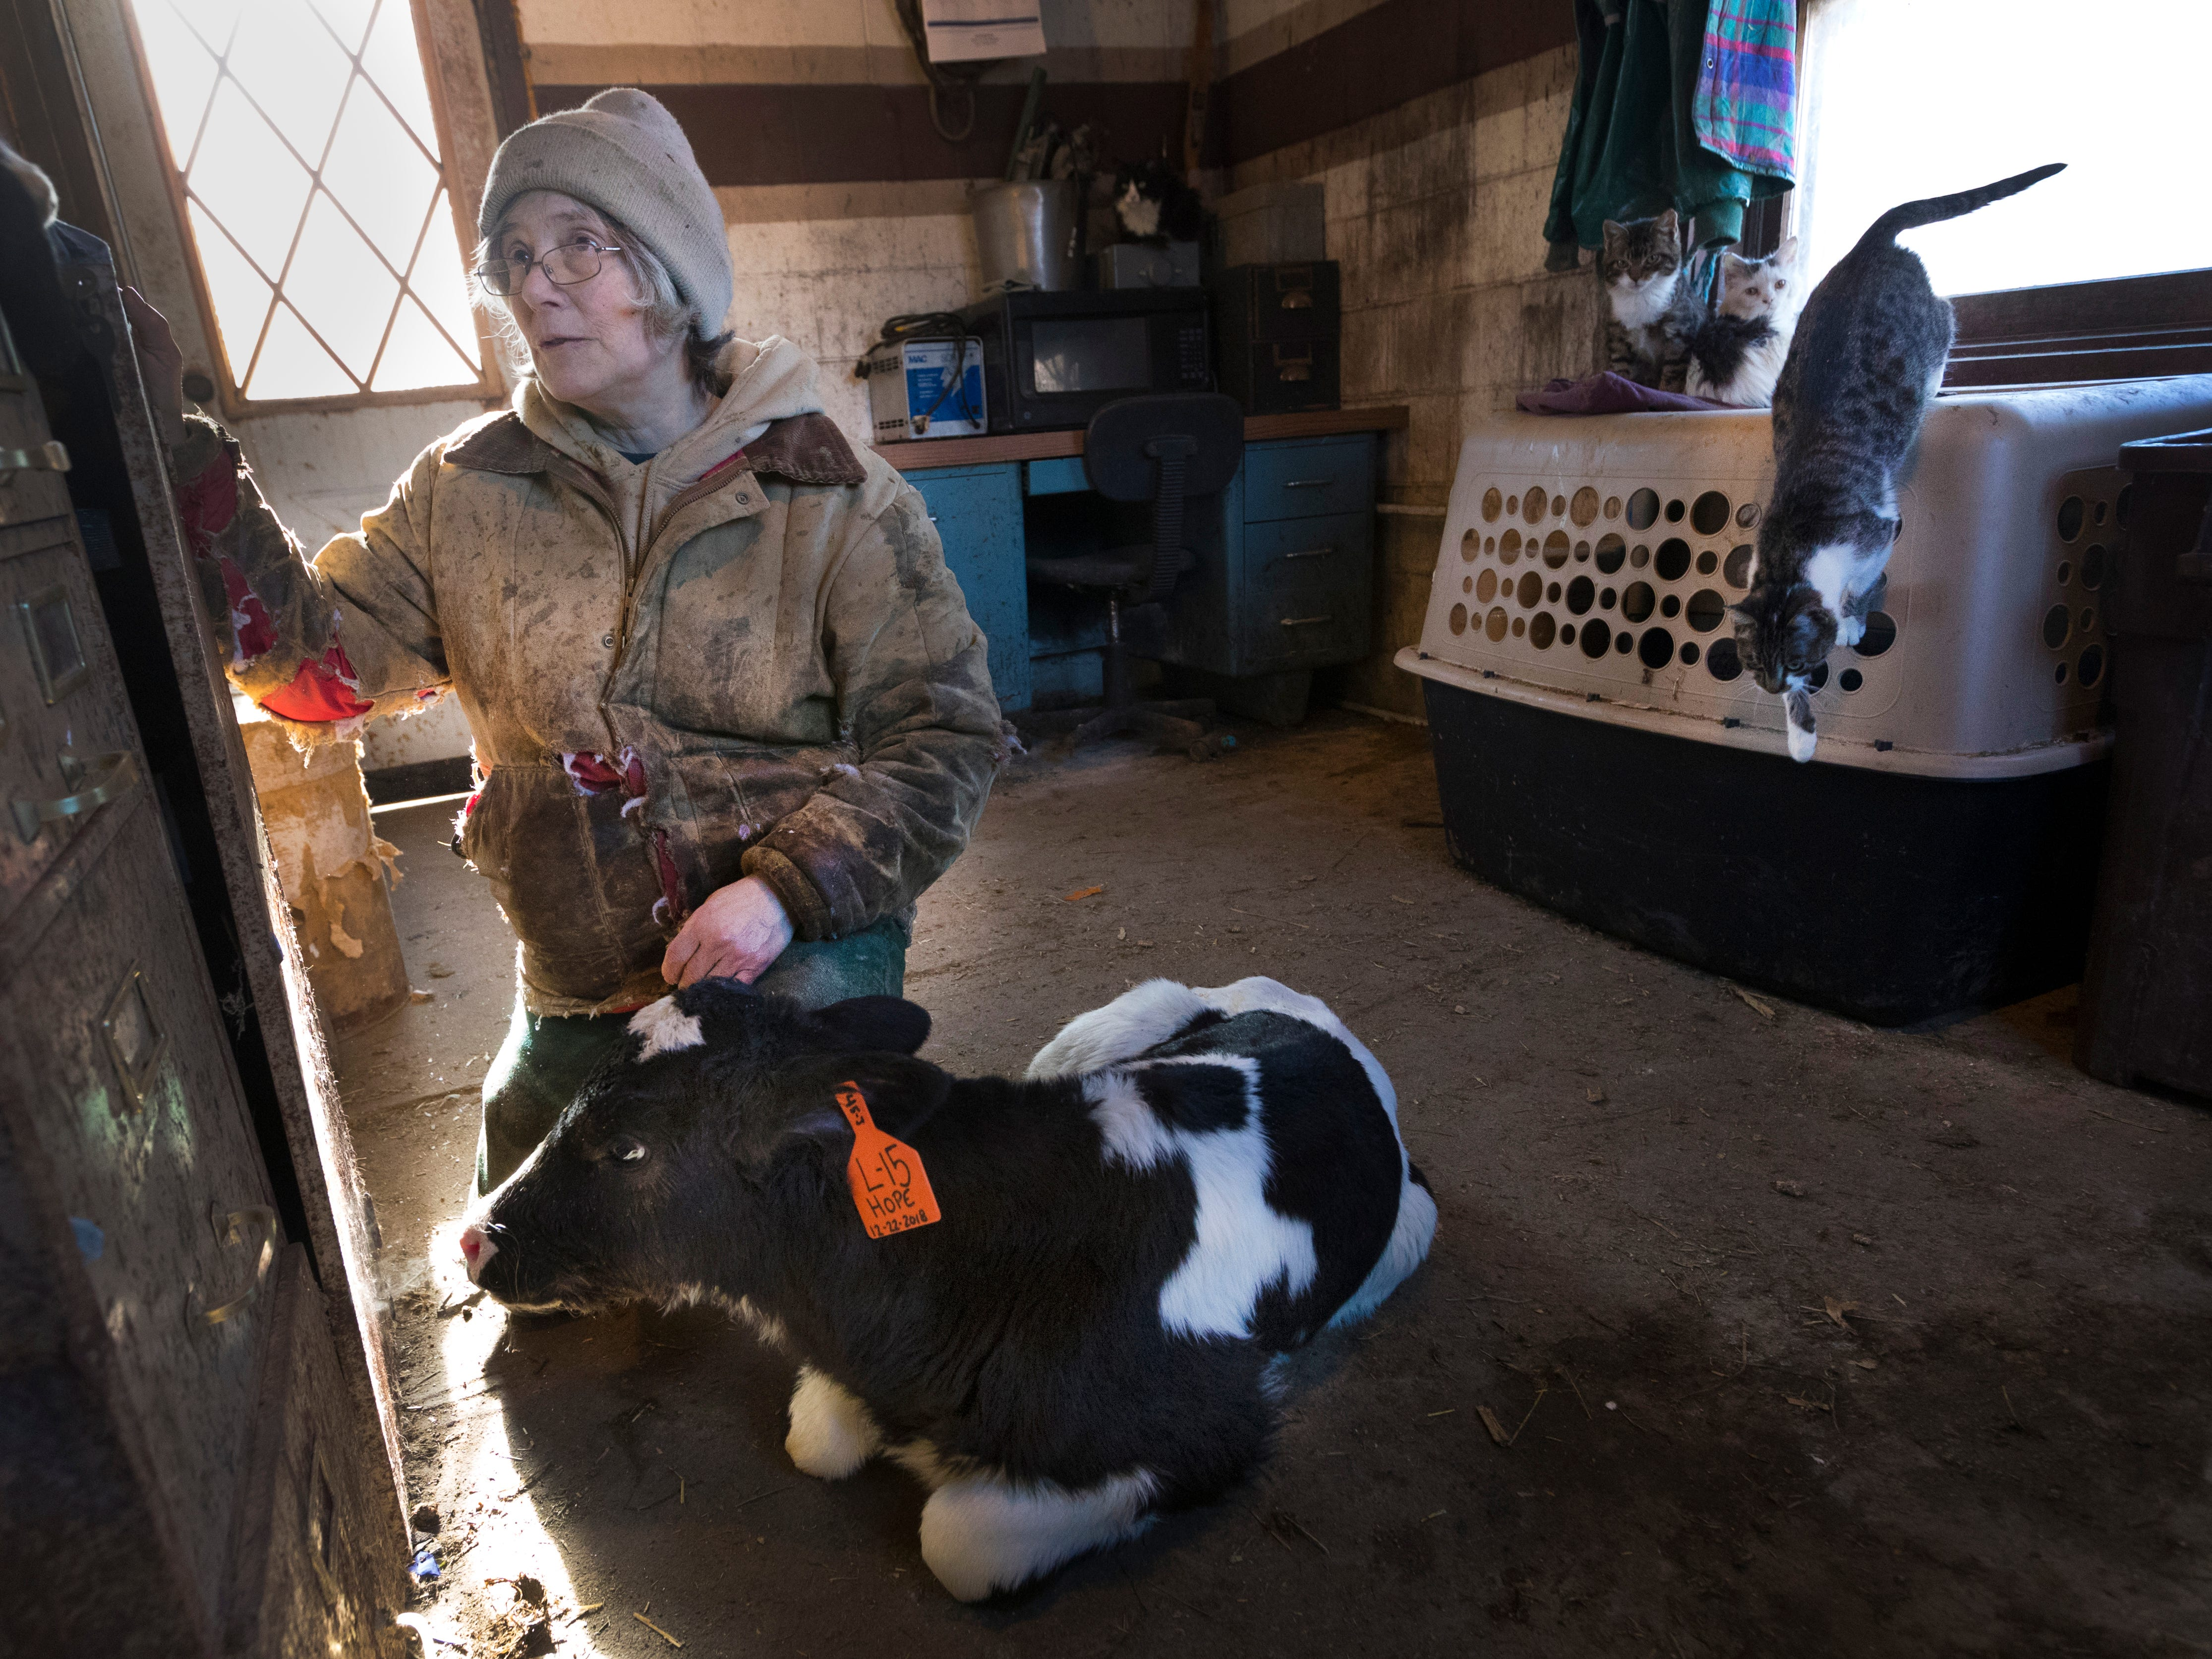 Sue Spaulding is shown with a 3-week-old calf, Hope, on the Spaulding family farm in Shell Lake Jan. 10. The calf, which had some health issues, was being kept in the office where it was warm. It died a few days later.